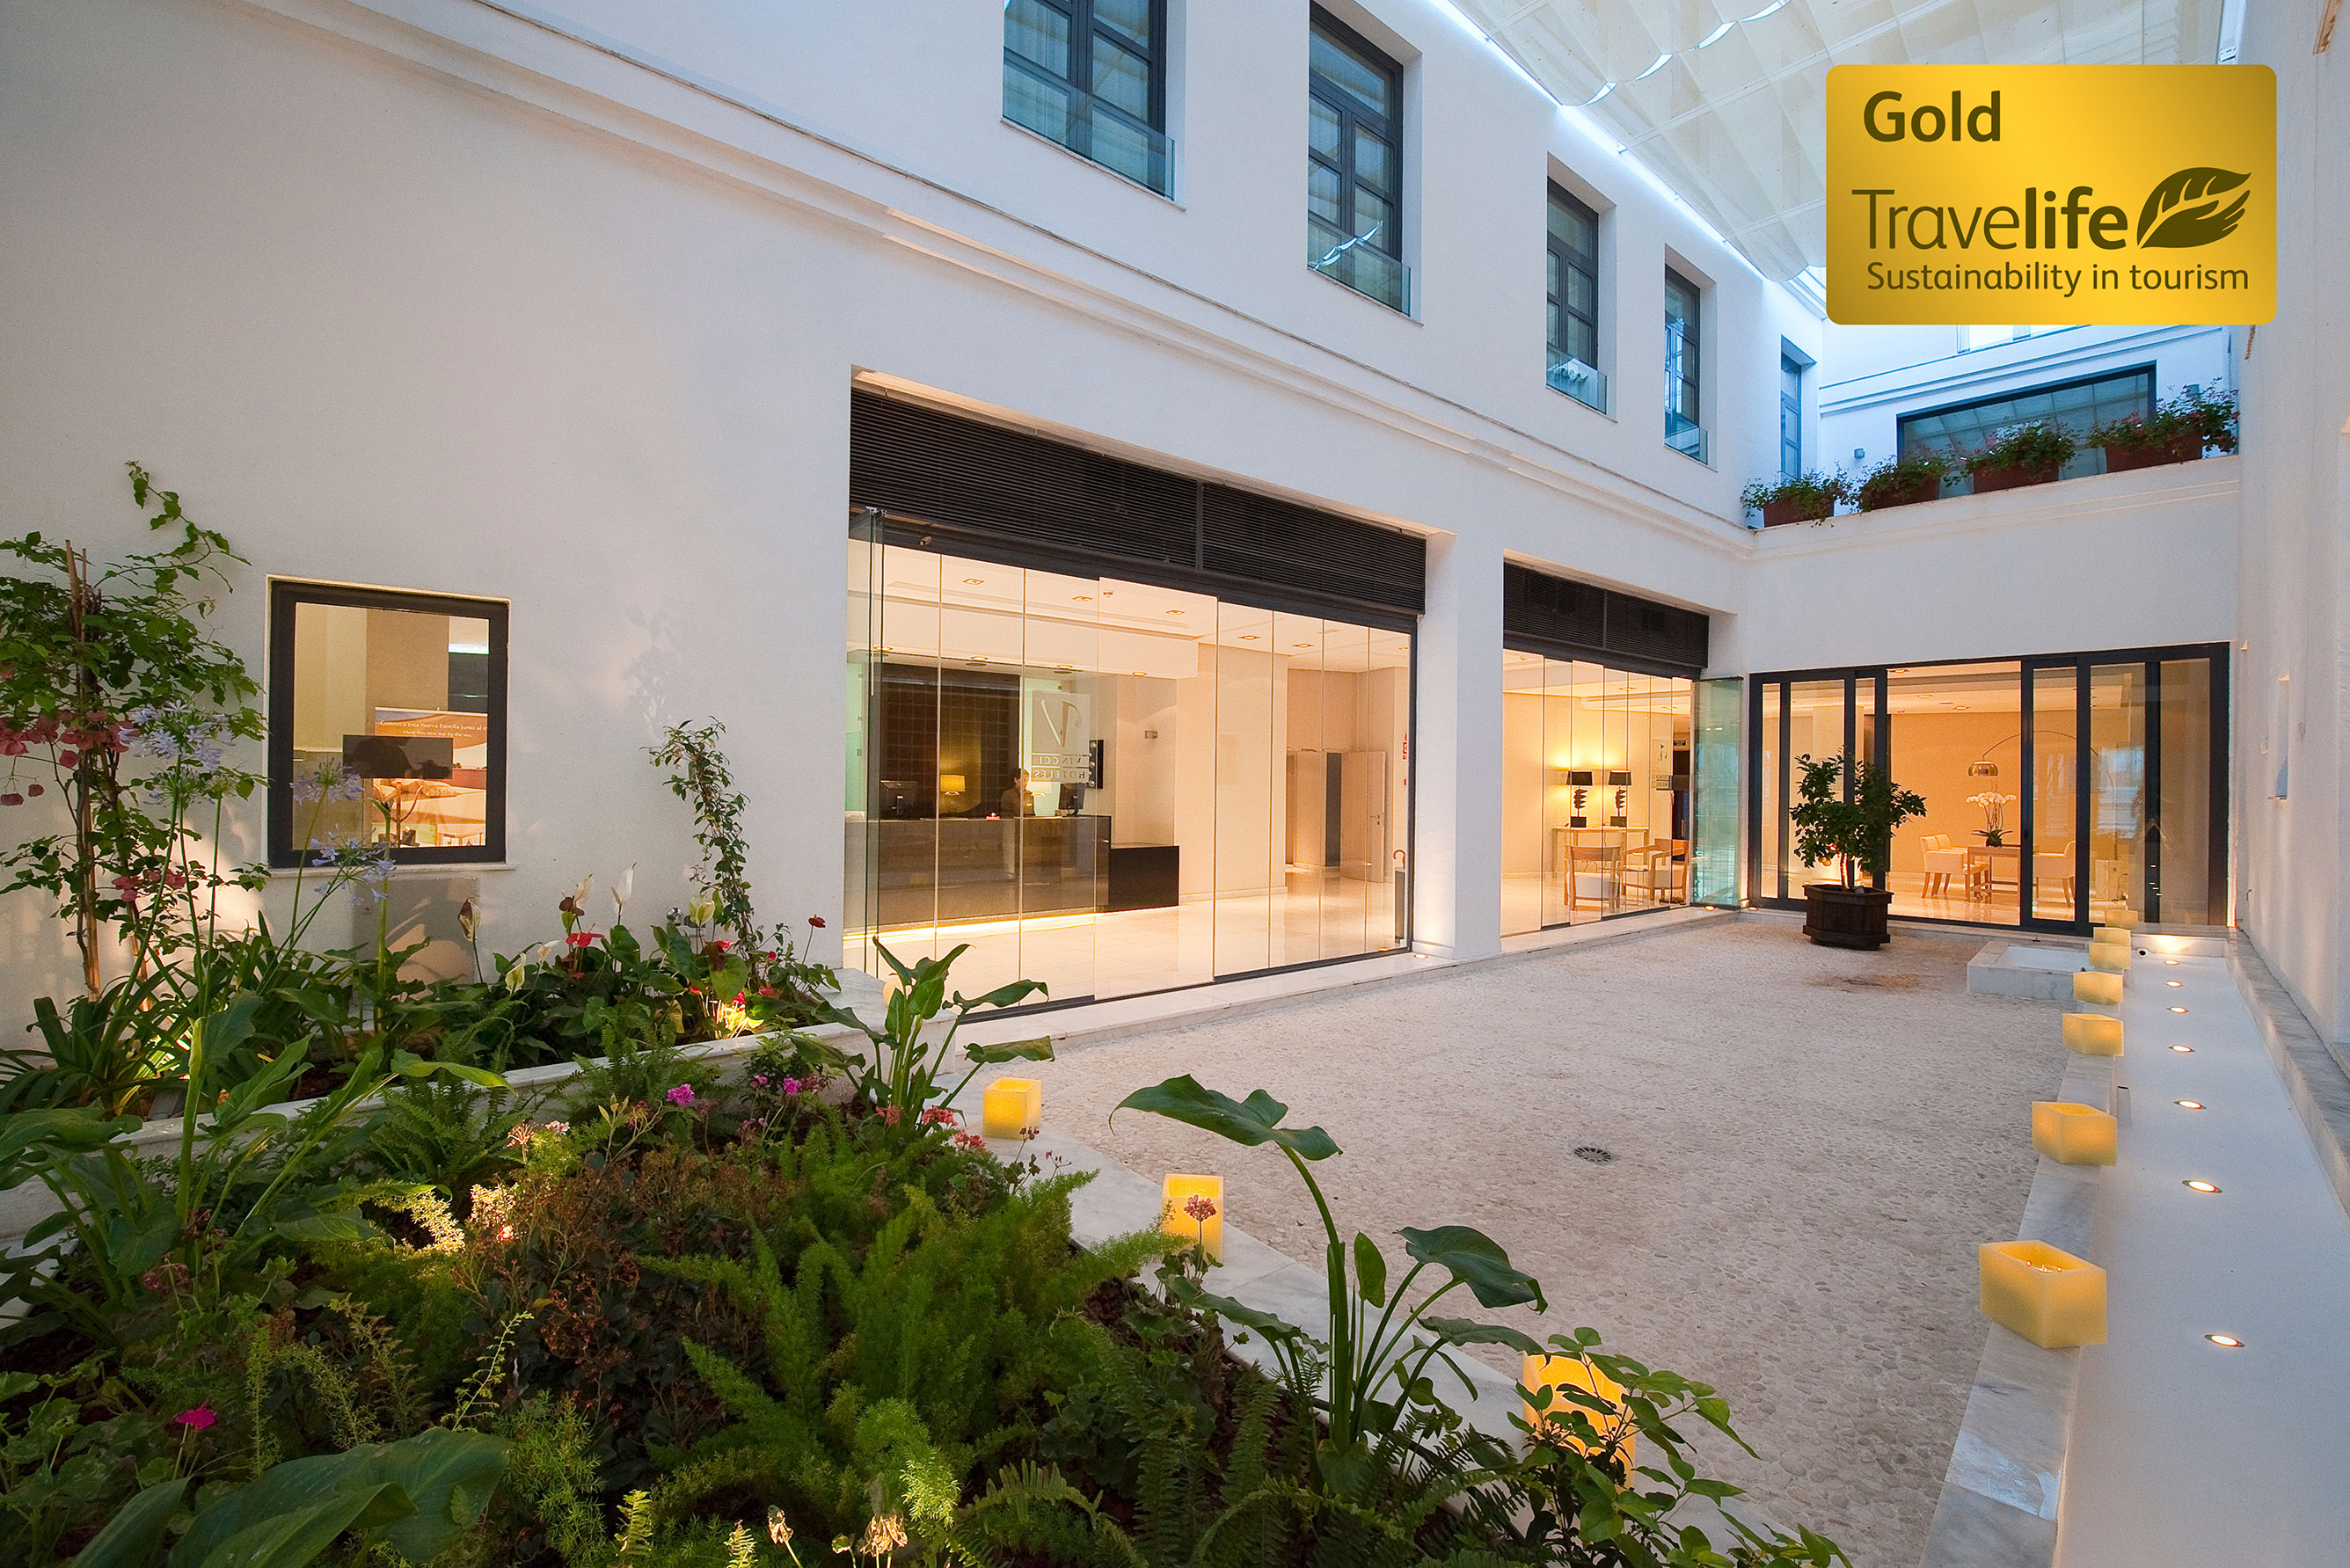 Vincci Hoteles Obtains The Travelife Gold Certificate